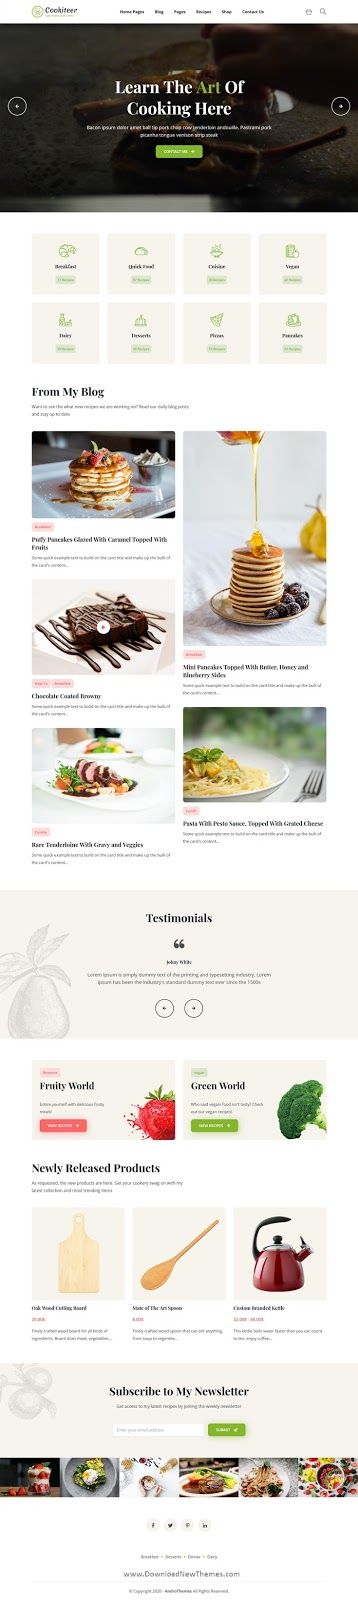 Food & Recipe Blog Template